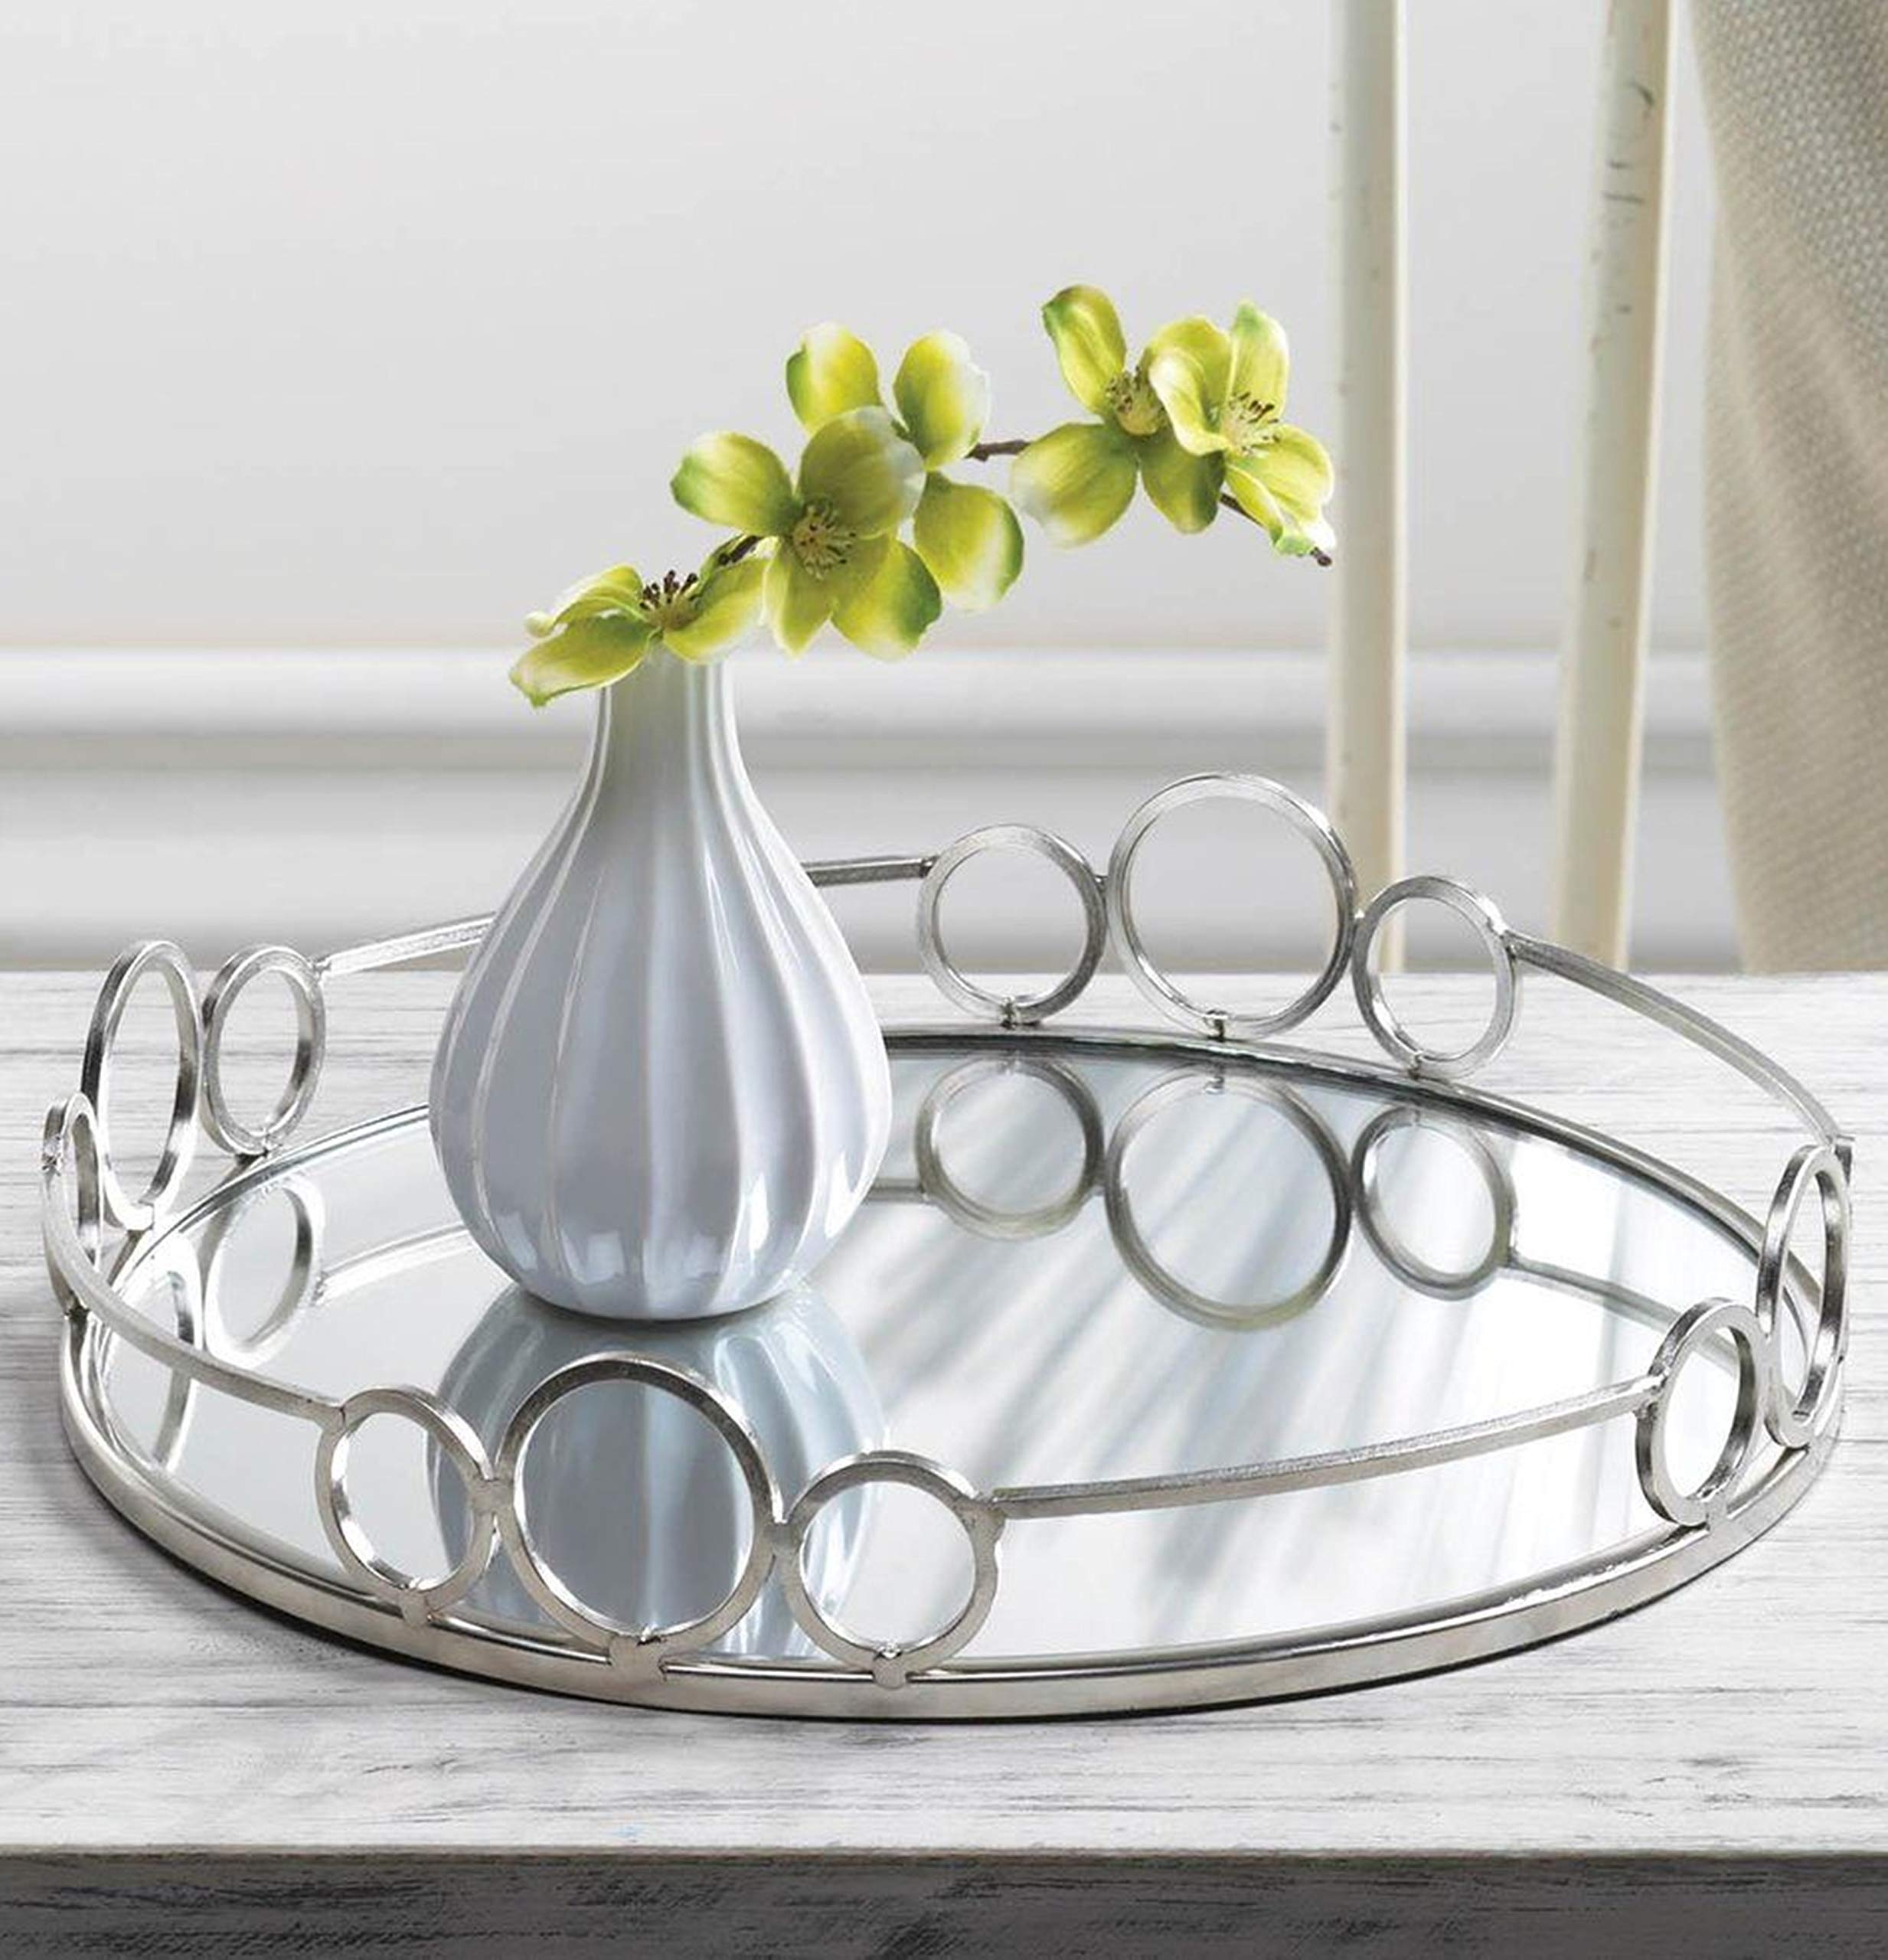 Round Mirrored Tray Beautiful Decorative Clear Glass Metal Vanity Trays Silver Round Mirror Cosmetics Organizer Chrome Rails Home Wall Table Top Accent Centerpiece Serveware Gifts for Women by Aspen Tree (Image #1)